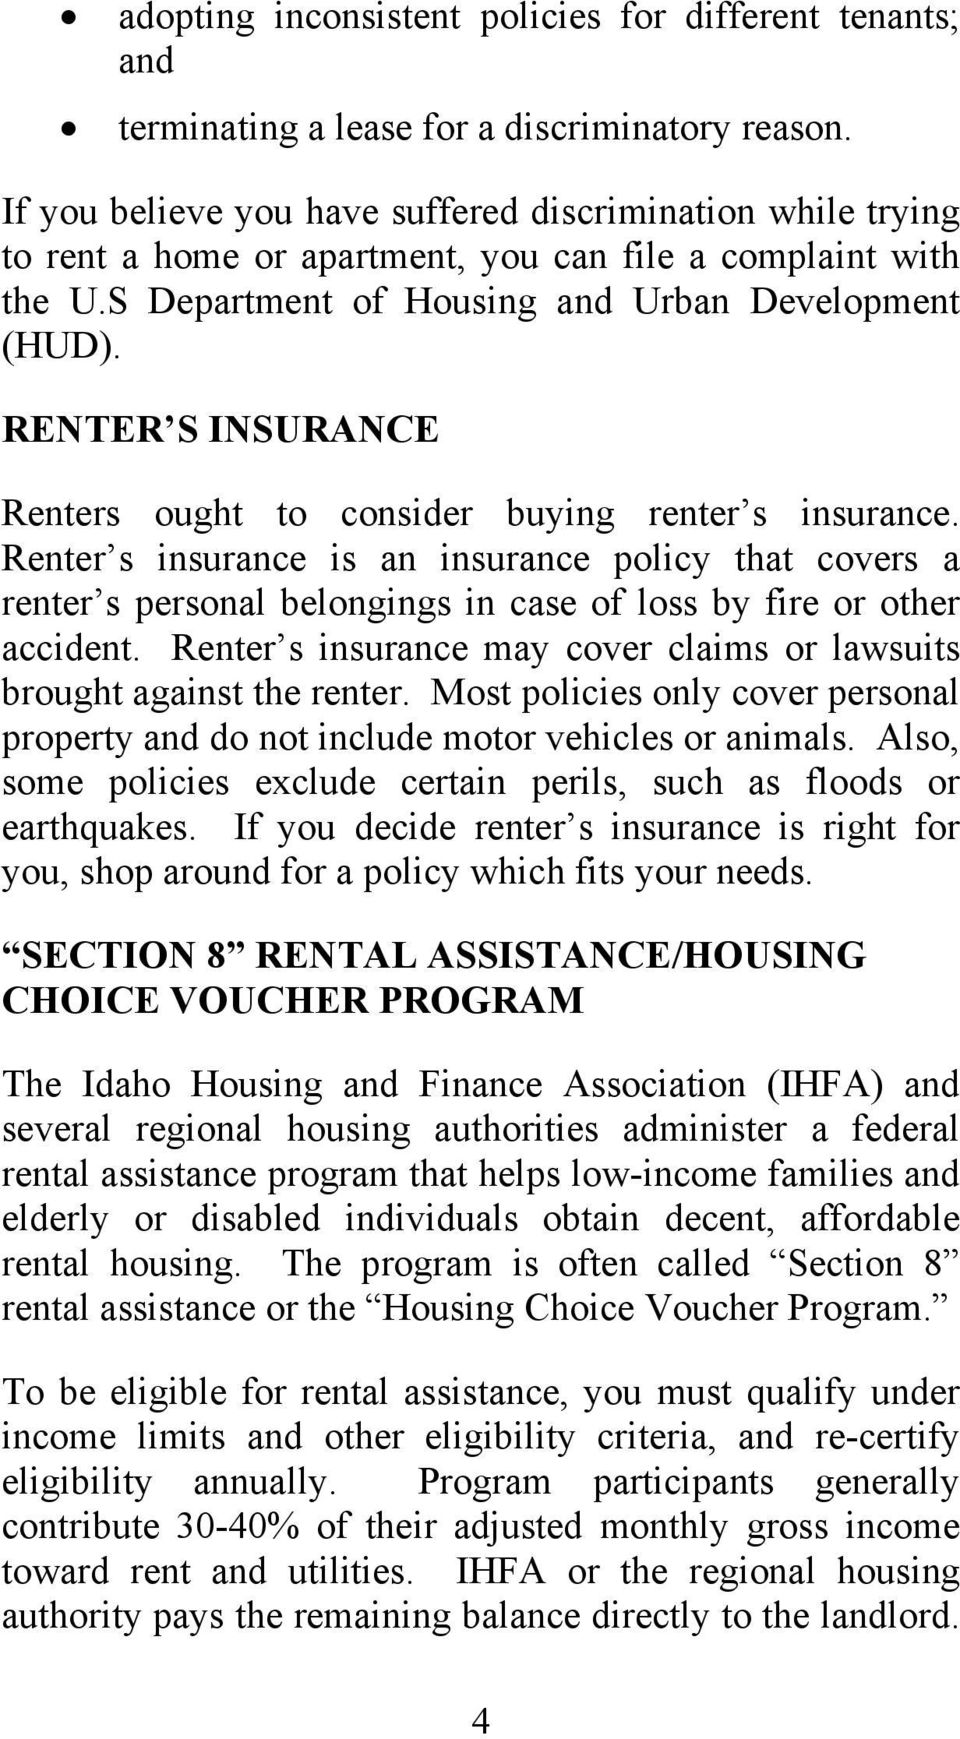 RENTER S INSURANCE Renters ought to consider buying renter s insurance. Renter s insurance is an insurance policy that covers a renter s personal belongings in case of loss by fire or other accident.